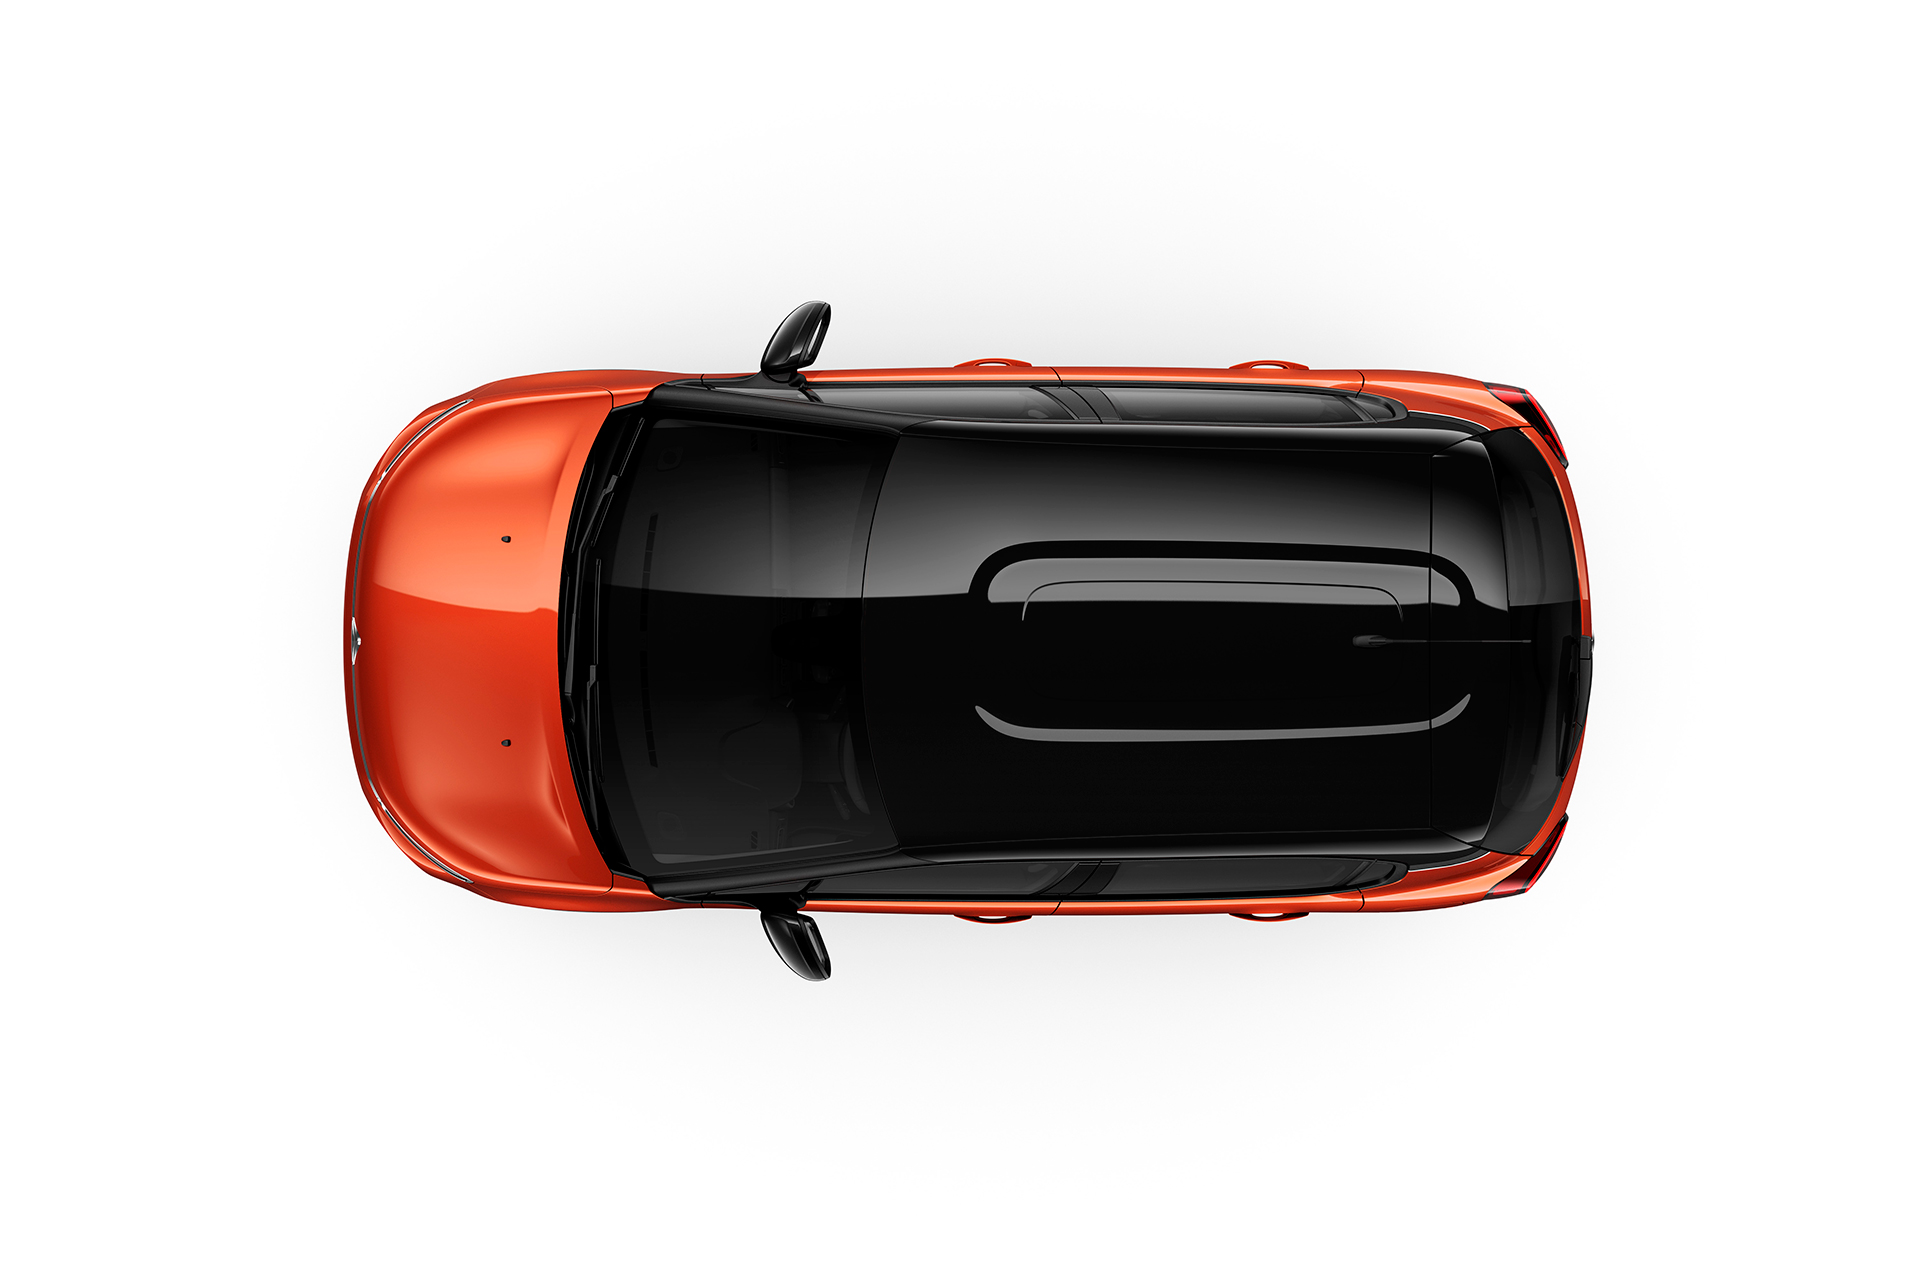 Citroen C3 2016 - top / toit - Noir Onyx - teintes Orange Power